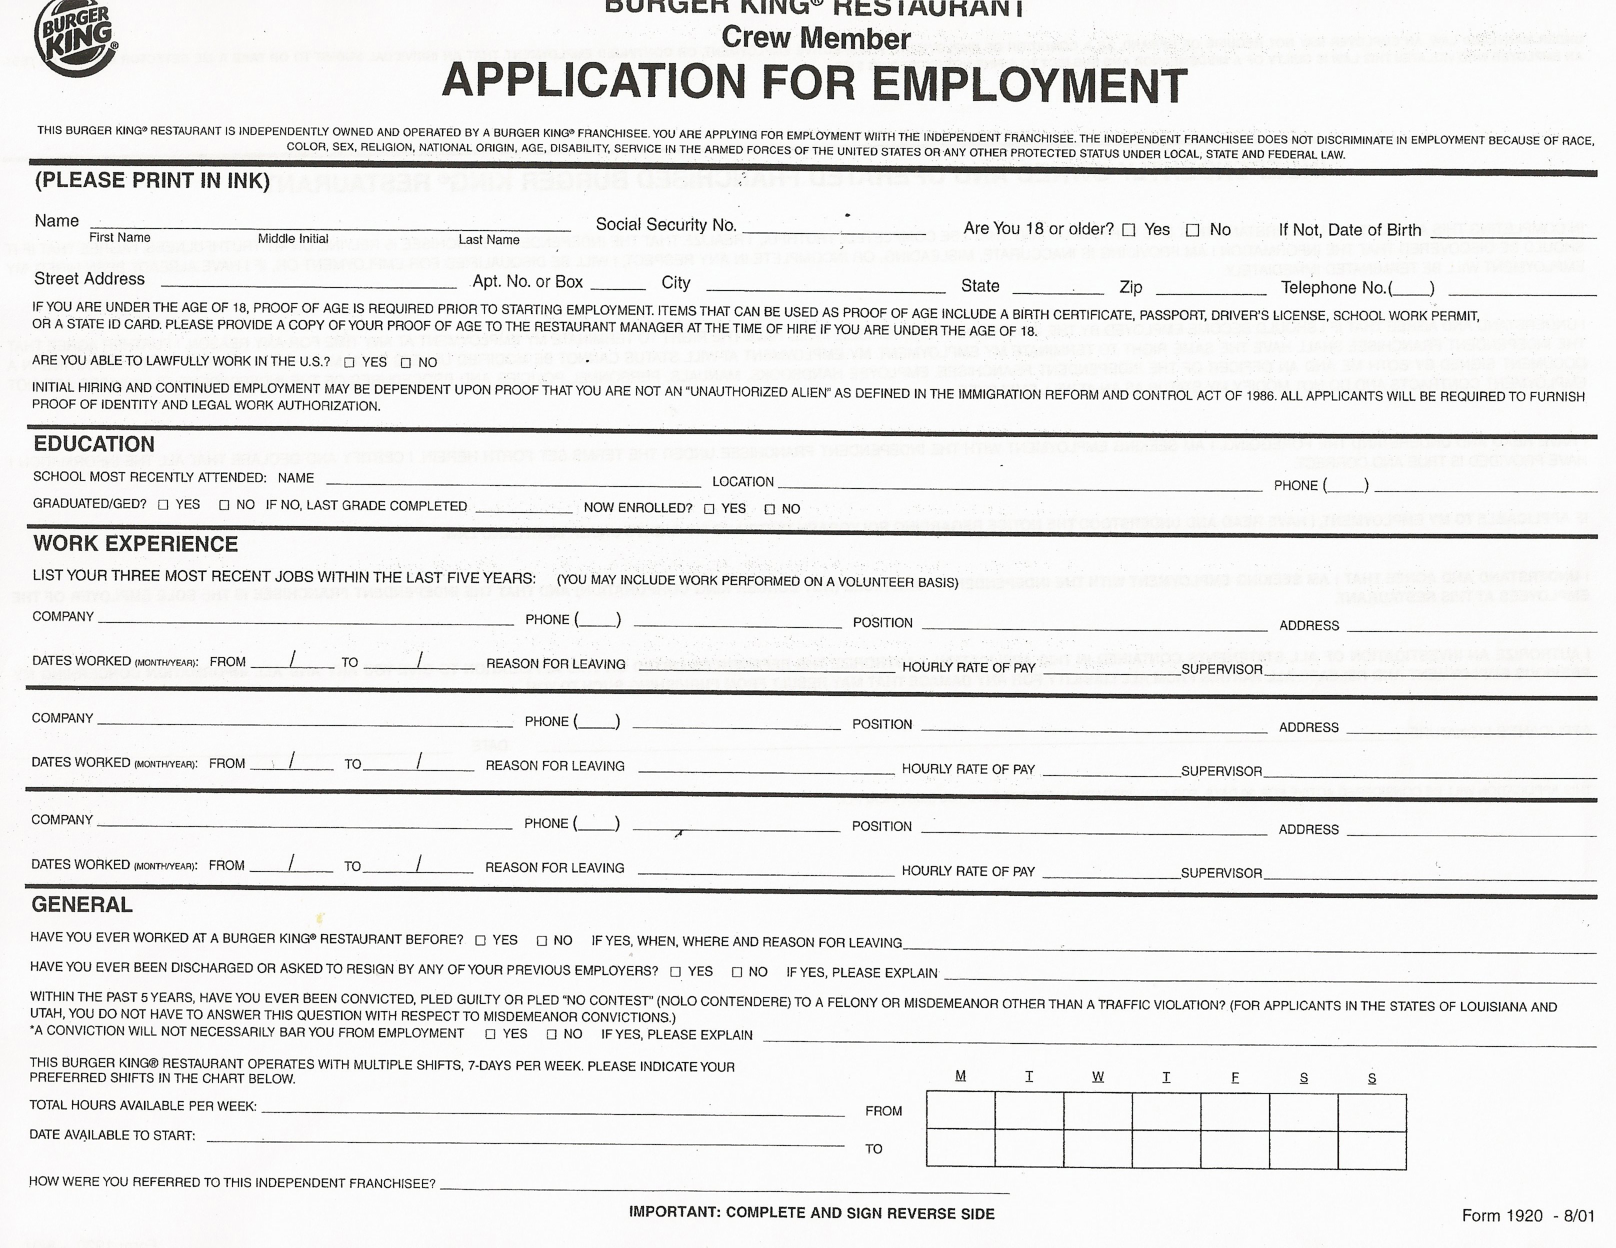 the job application form template from vertex42 com for employment application forms to print job application printable job applications printable job application